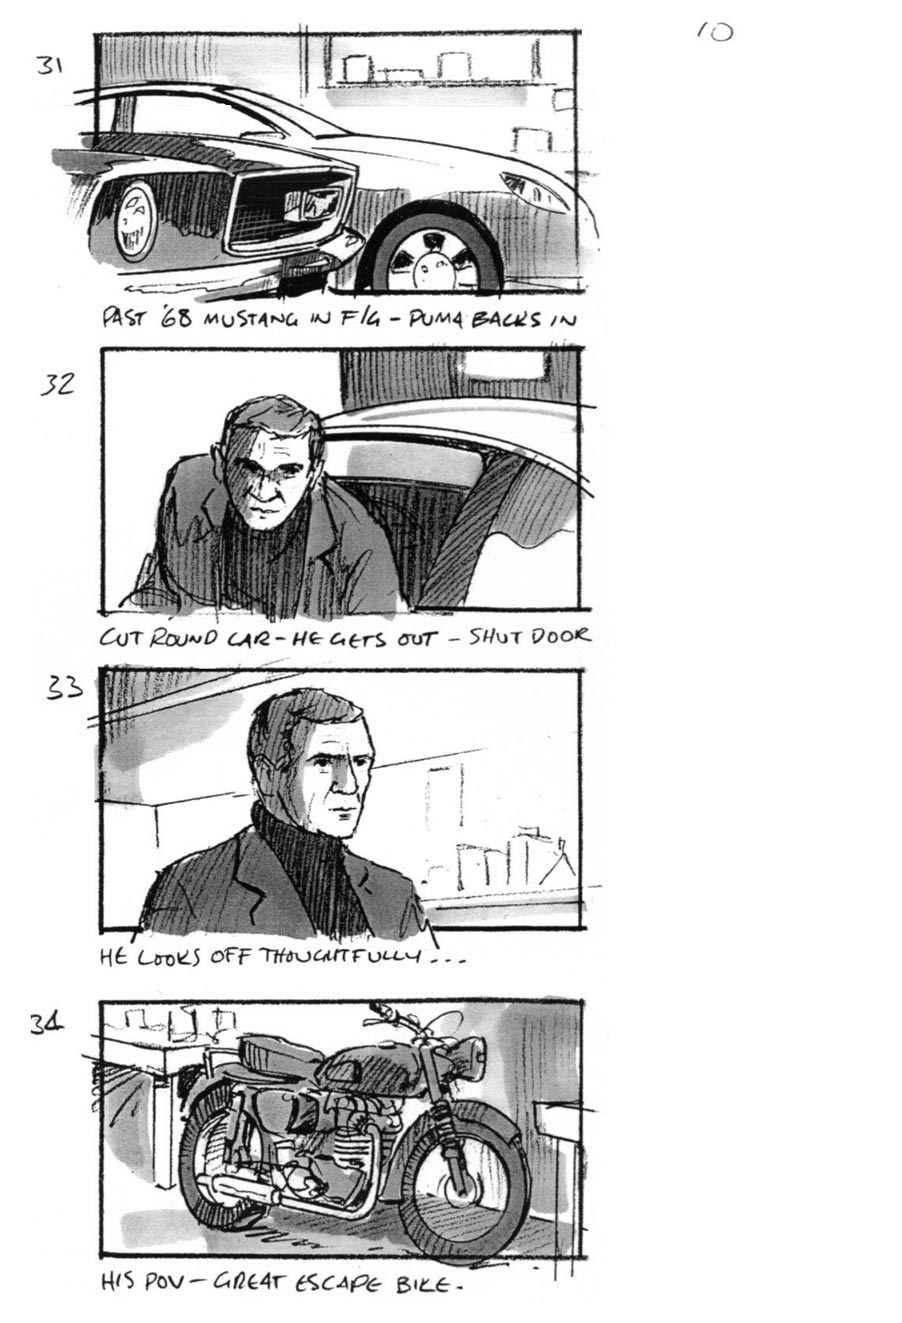 Ford Puma Car Commercials By Storyboard Artist By Douglas